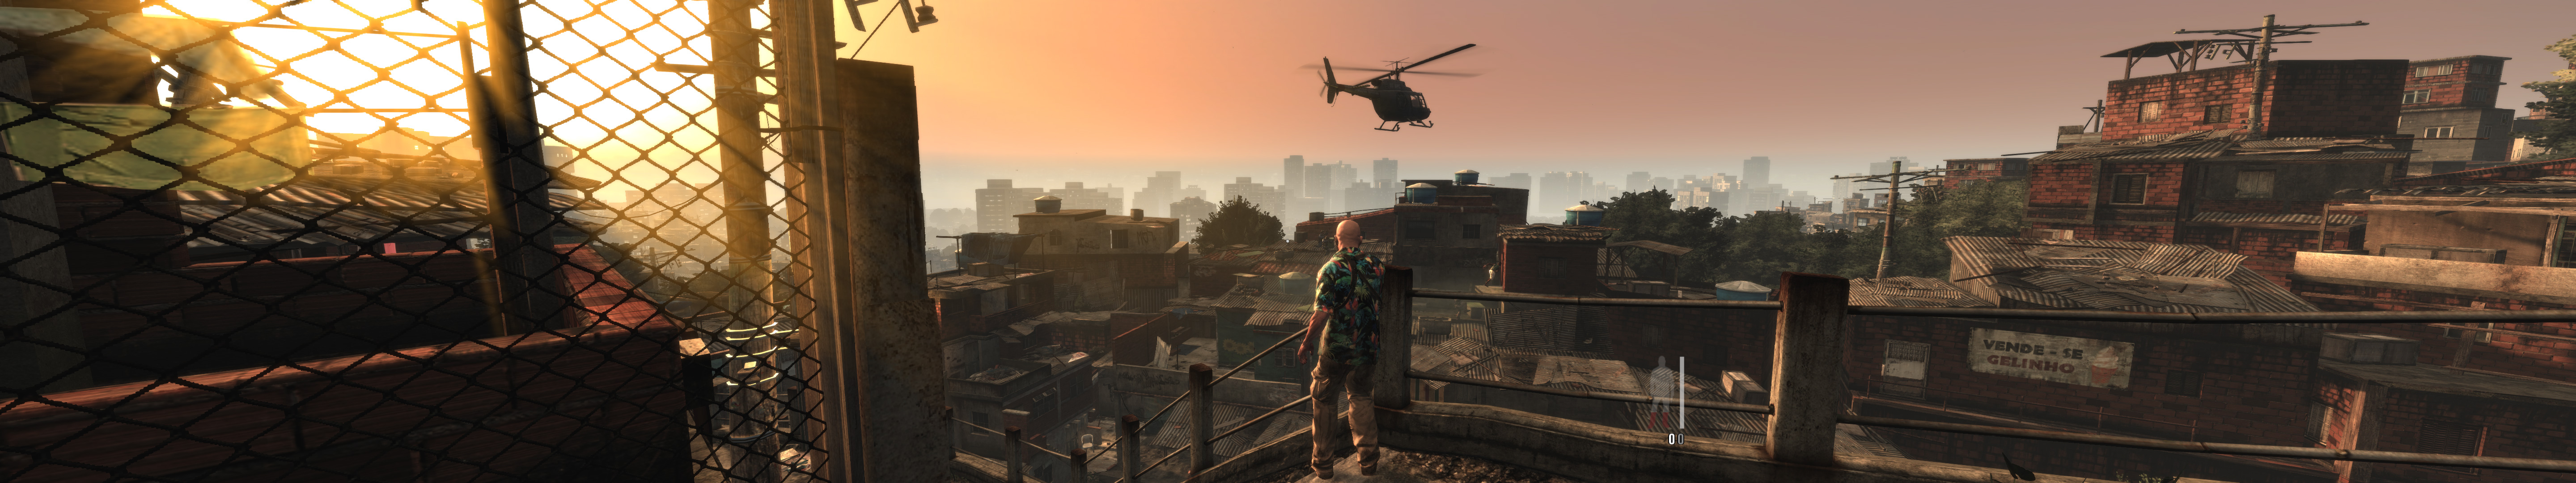 favela 3 Max Payne 3 PC evaluation & FXAA vs. MSAA shootout